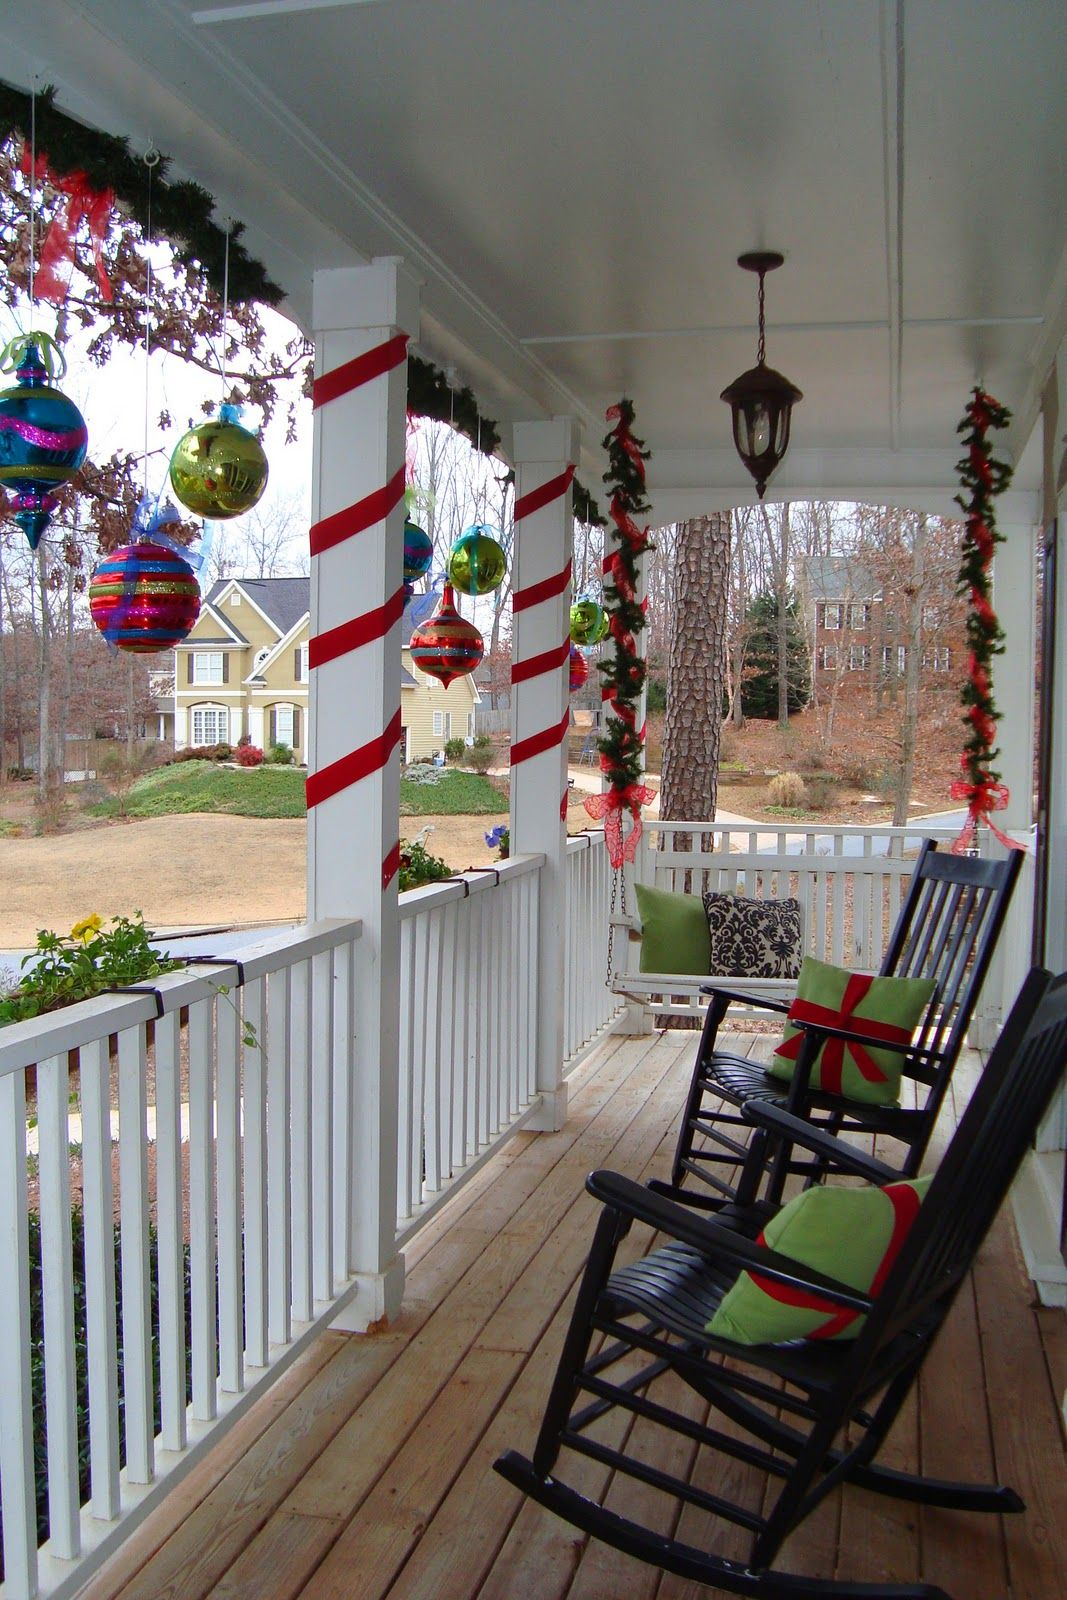 Ribbon Wrapped Around Pillars And Ornaments From The Ceiling Christmas Porch Decor Outside Christmas Decorations Front Porch Christmas Decor